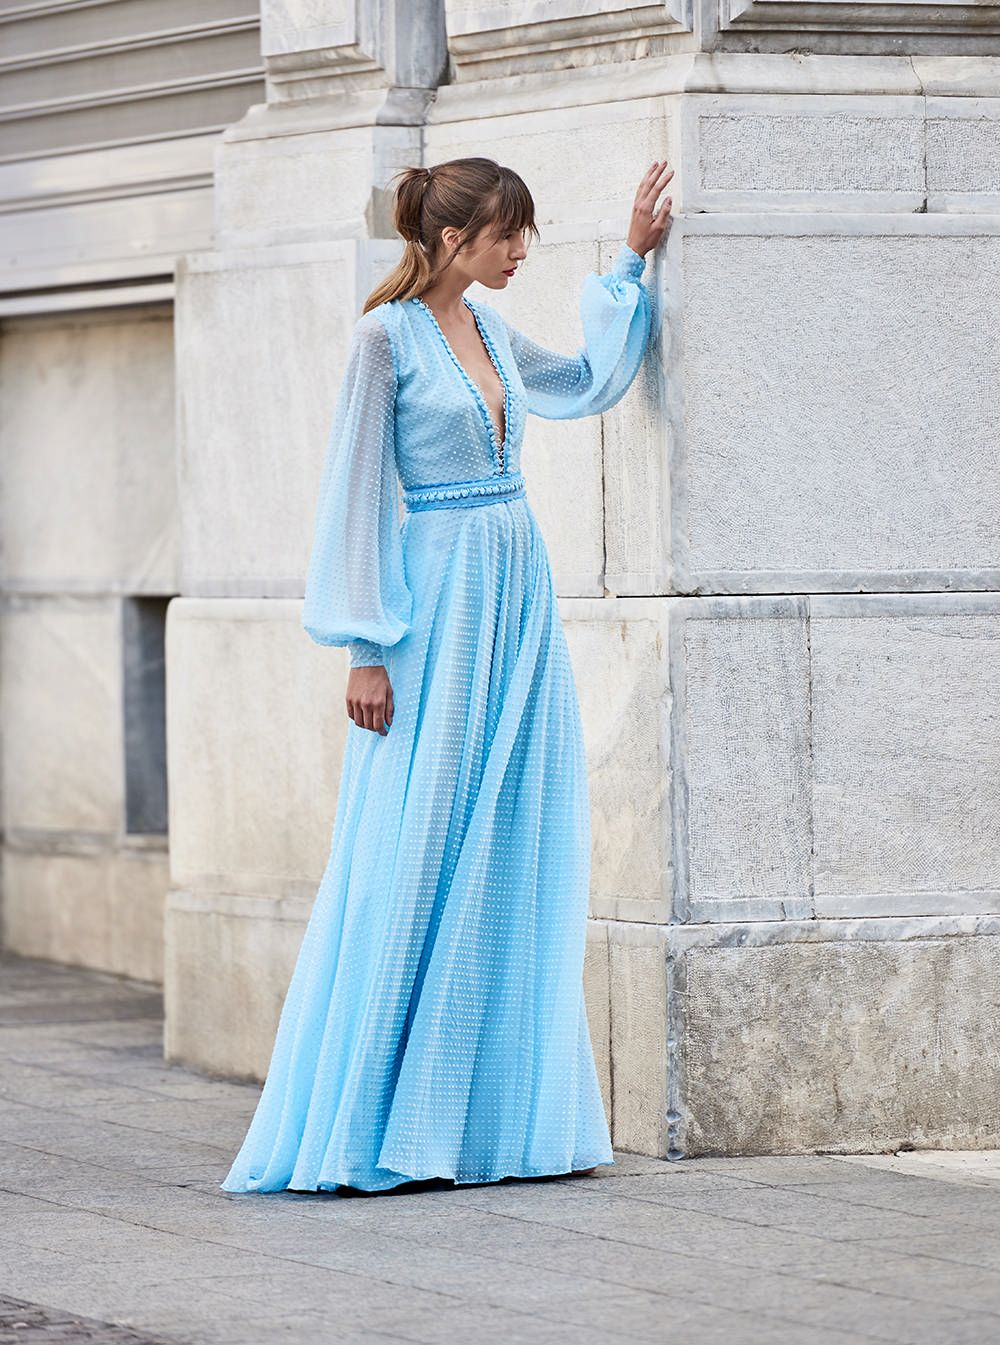 Costarellos Spring Summer 2018 Collection Br Ss18 11 Br V Neck Long Airy Dress With Bishop Sleeves Maxi Dress Evening Maxi Dress With Sleeves Maxi Dress [ 1345 x 1000 Pixel ]